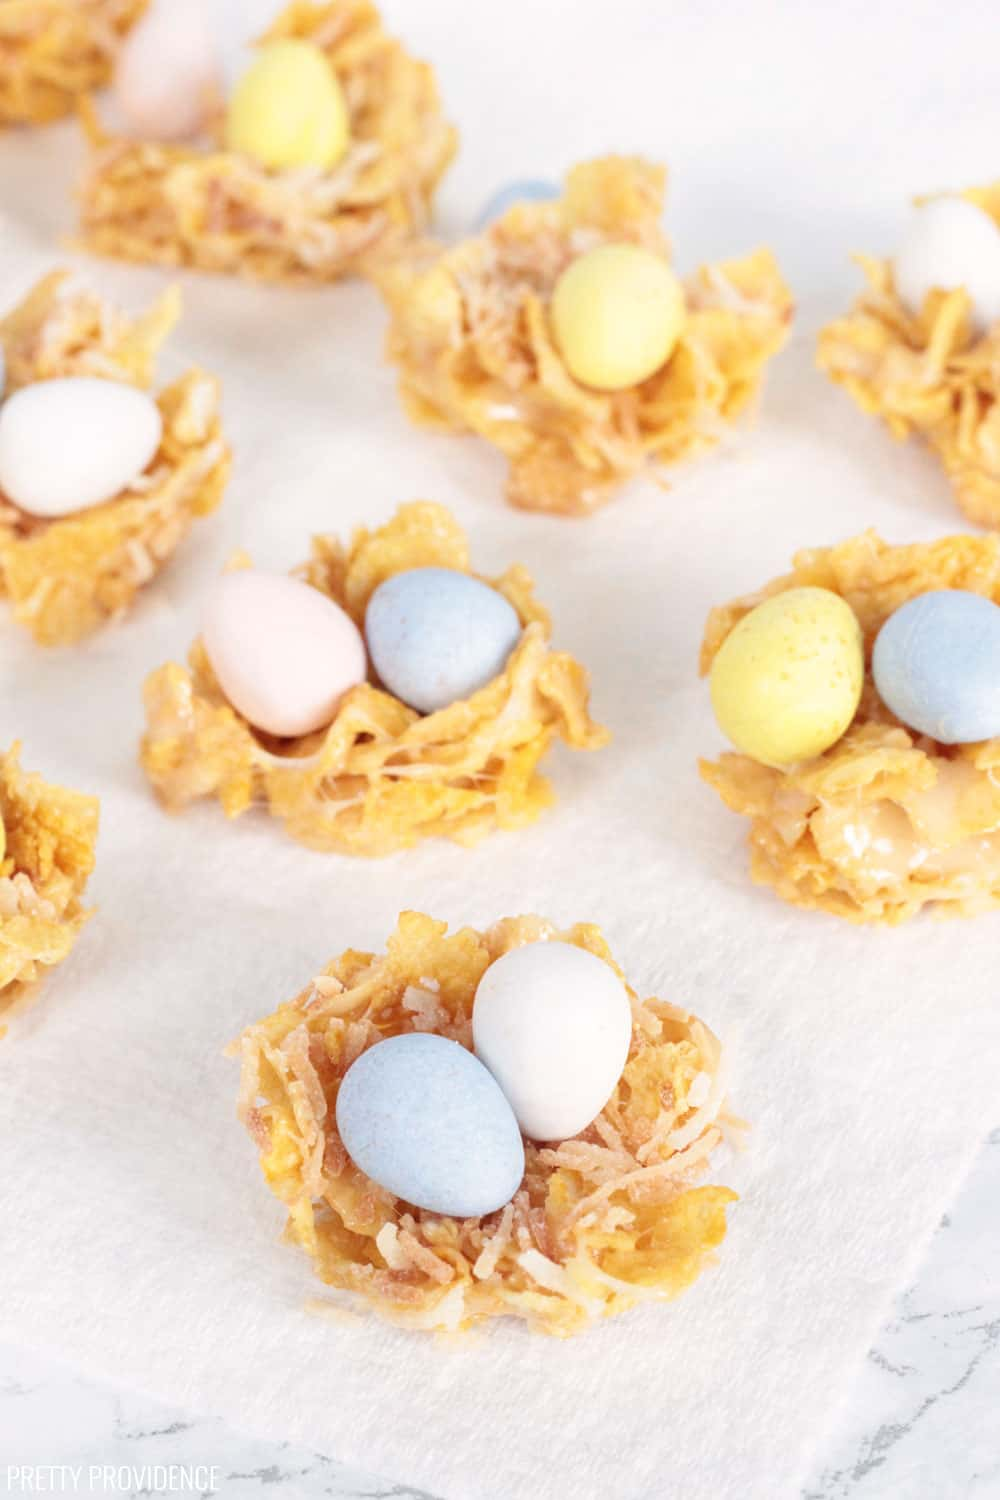 Easter Nests with Cadbury Mini Eggs, Cornflakes and Marshmallows